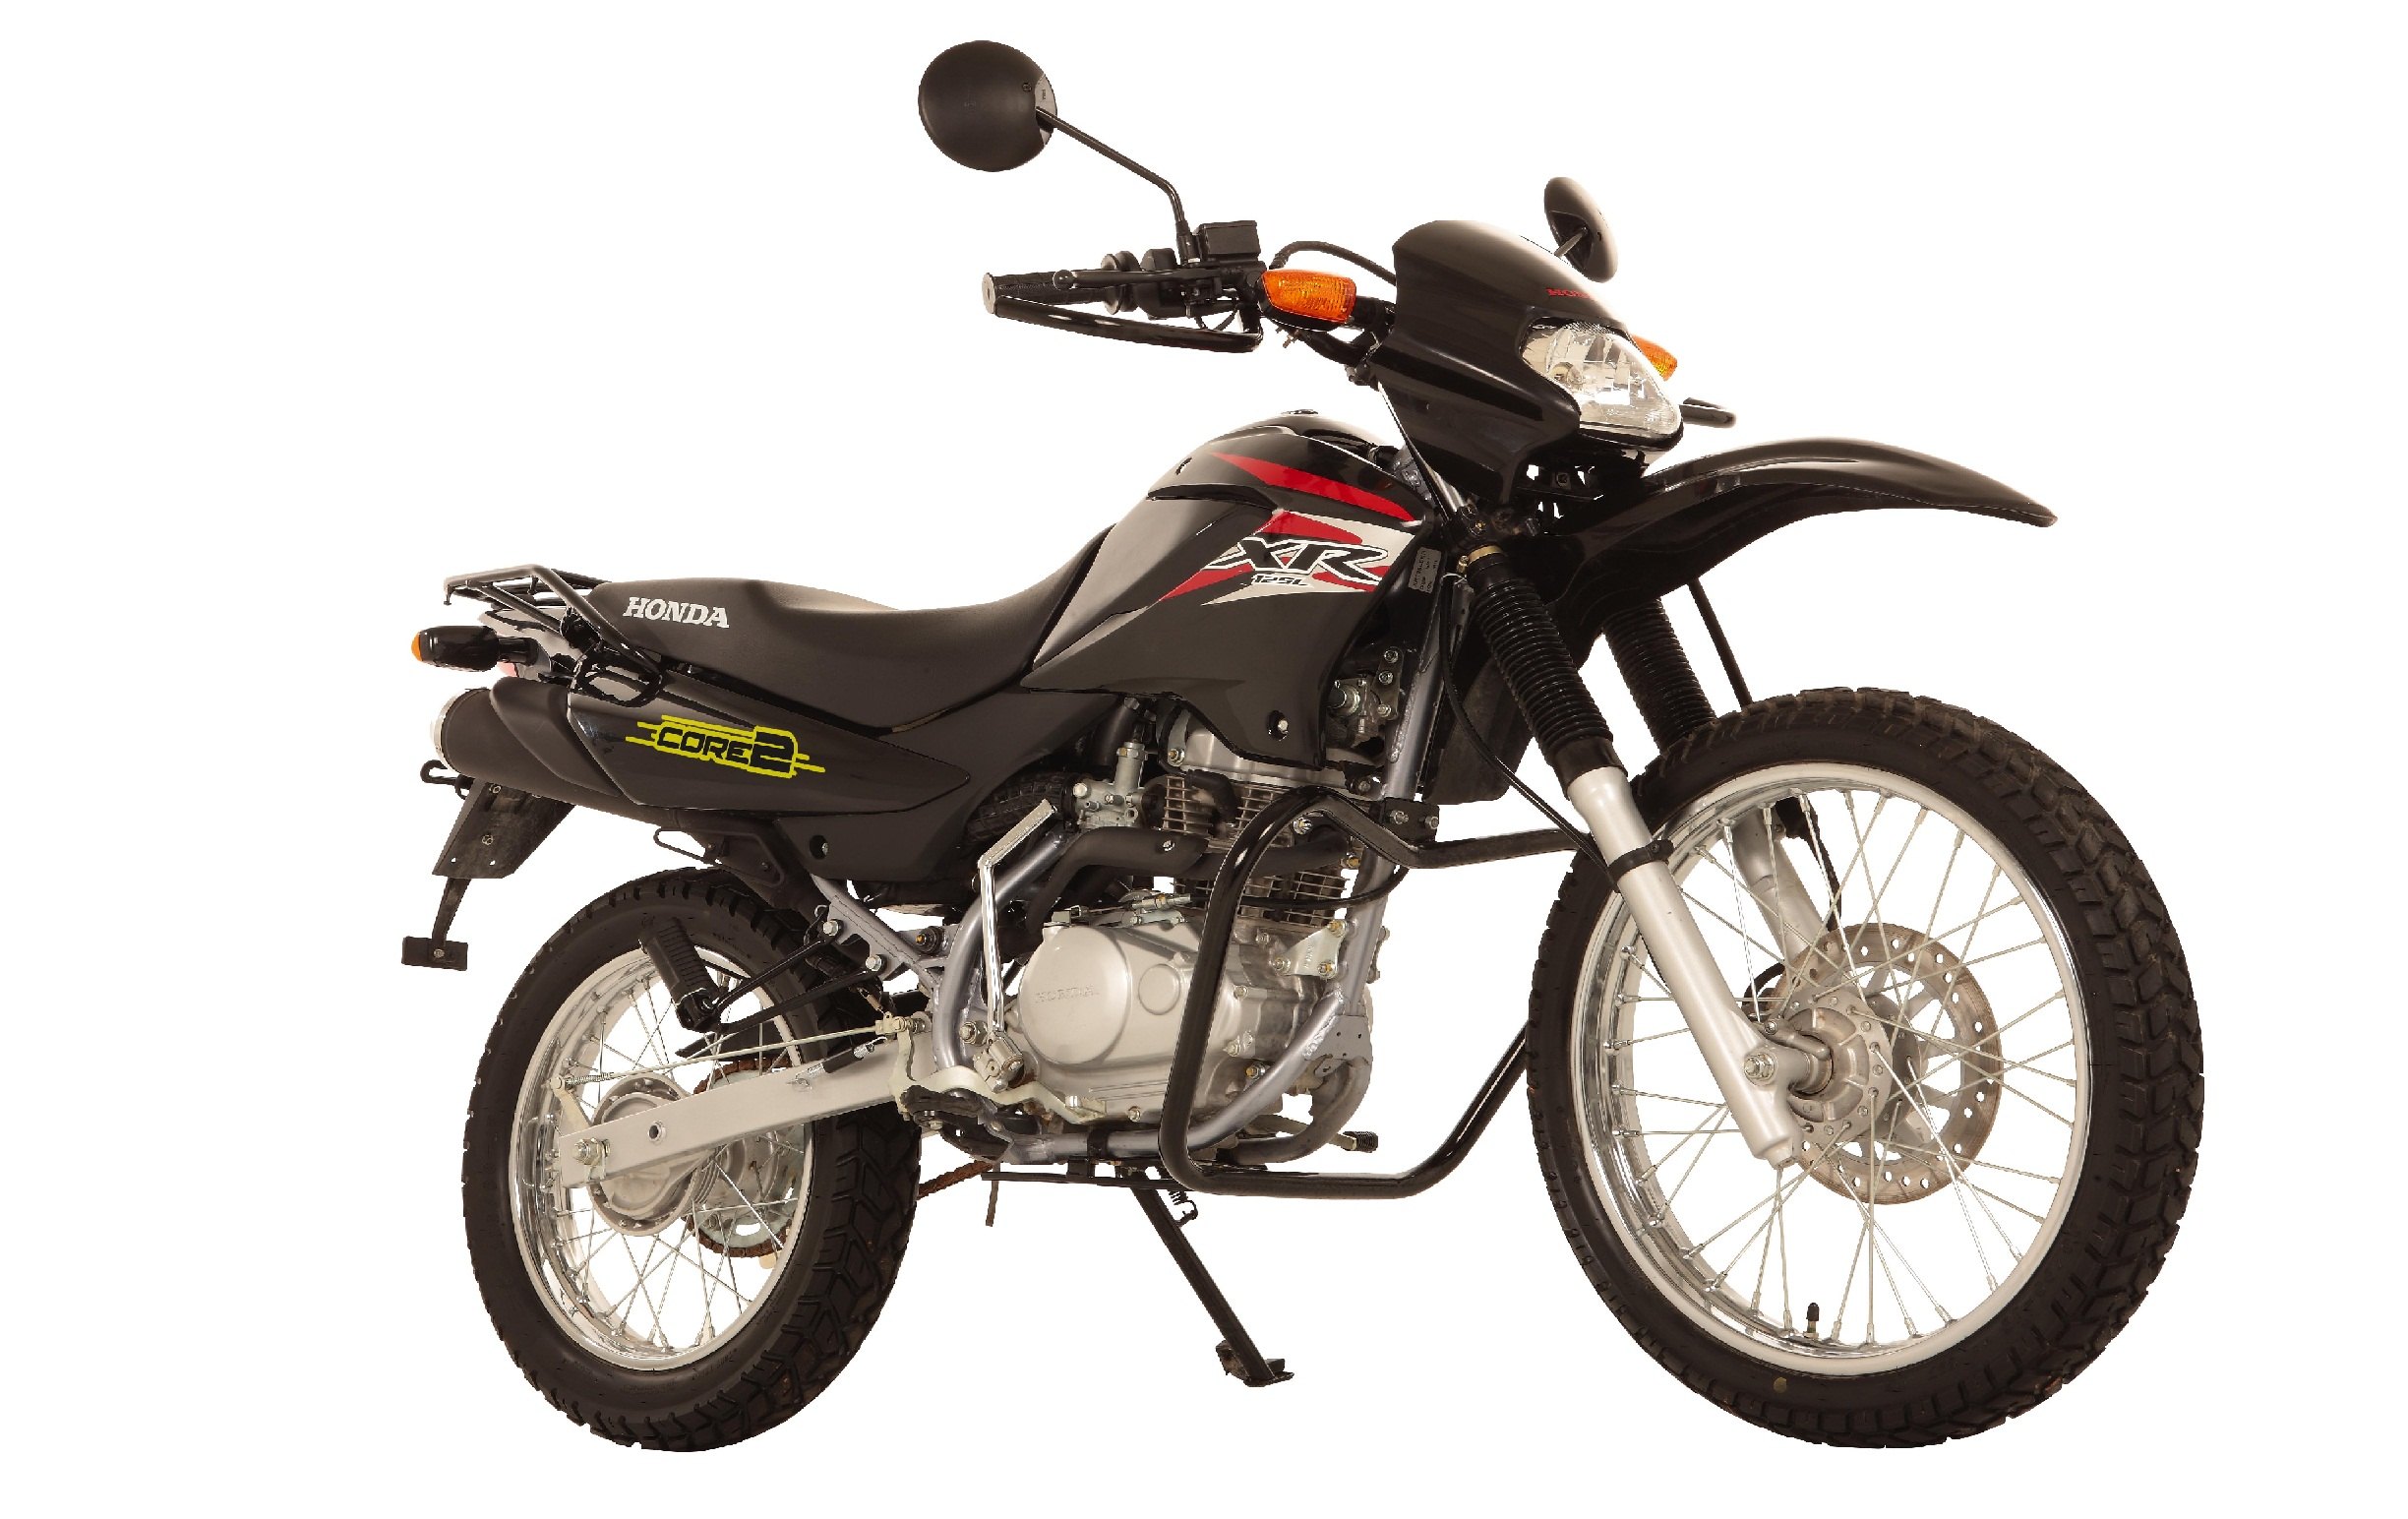 enlarge honda xl xr Array - honda xl 125 l manual rh honda xl 125 l manual  logoutev de